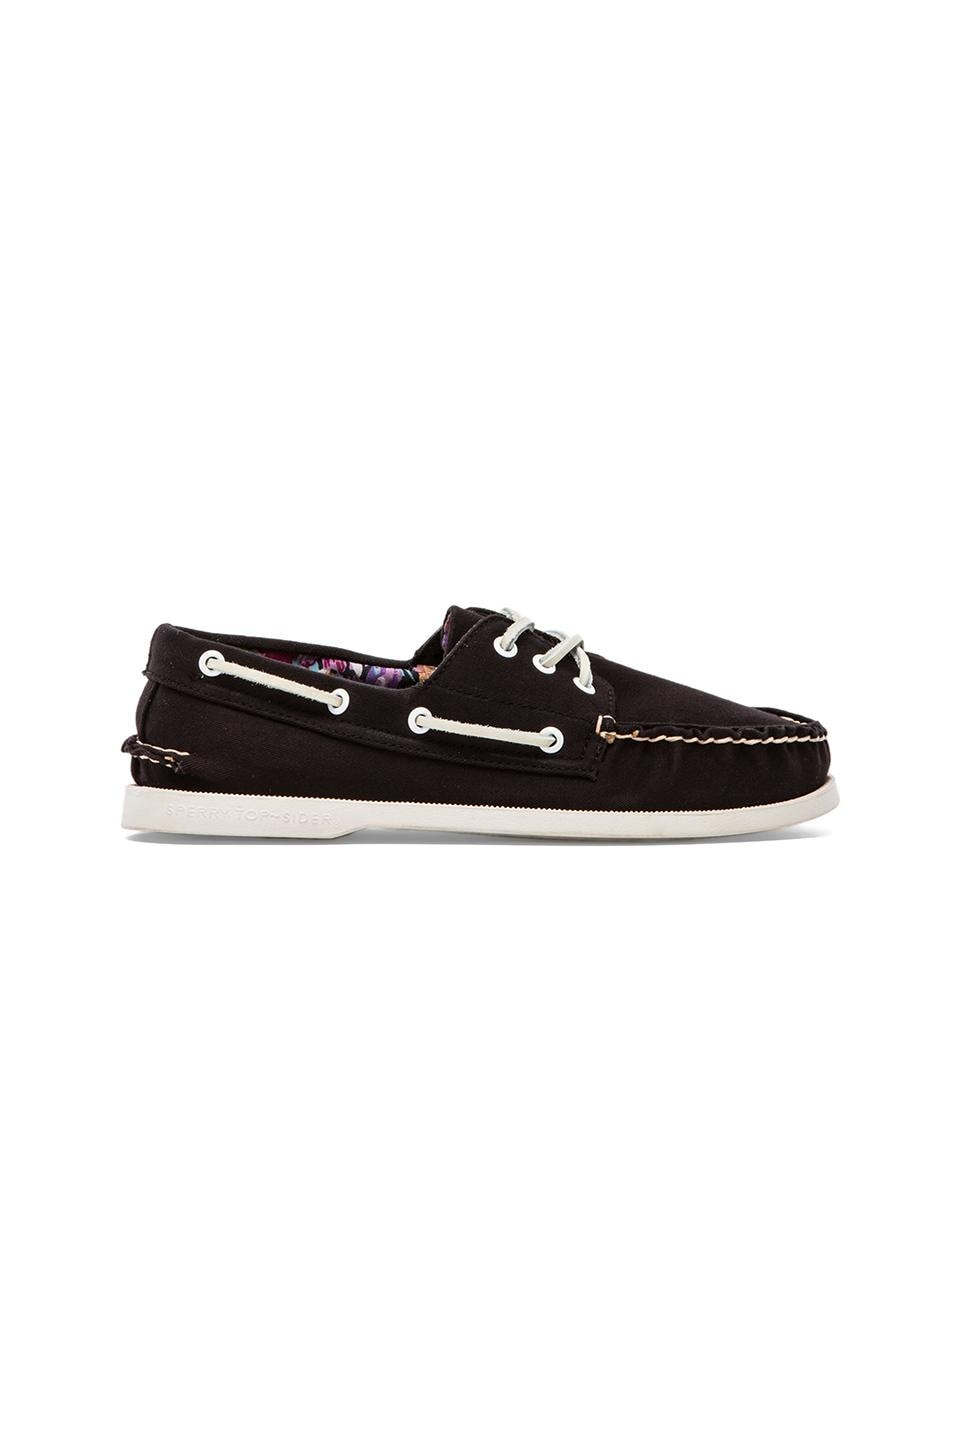 Sperry Top-Sider A/O 3-Eye Canvas in Black